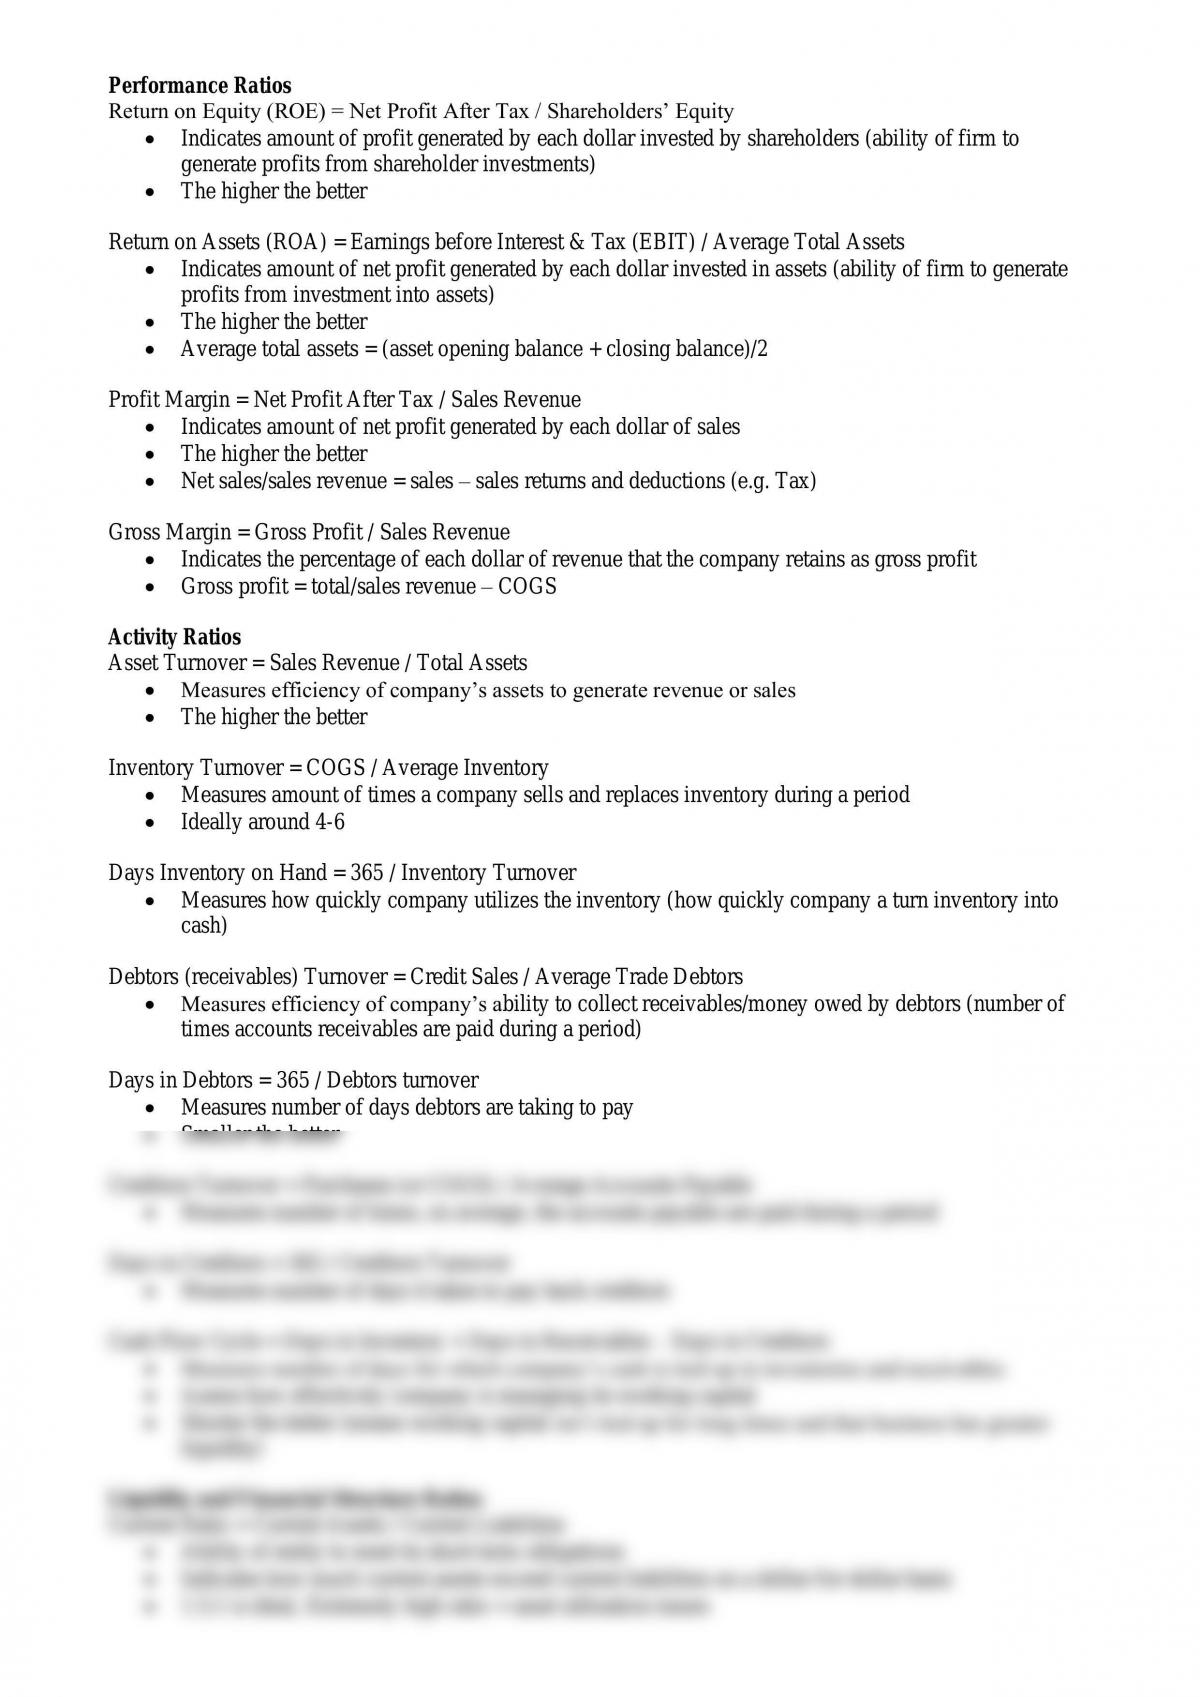 Accounting Ratios with explanations - Page 1